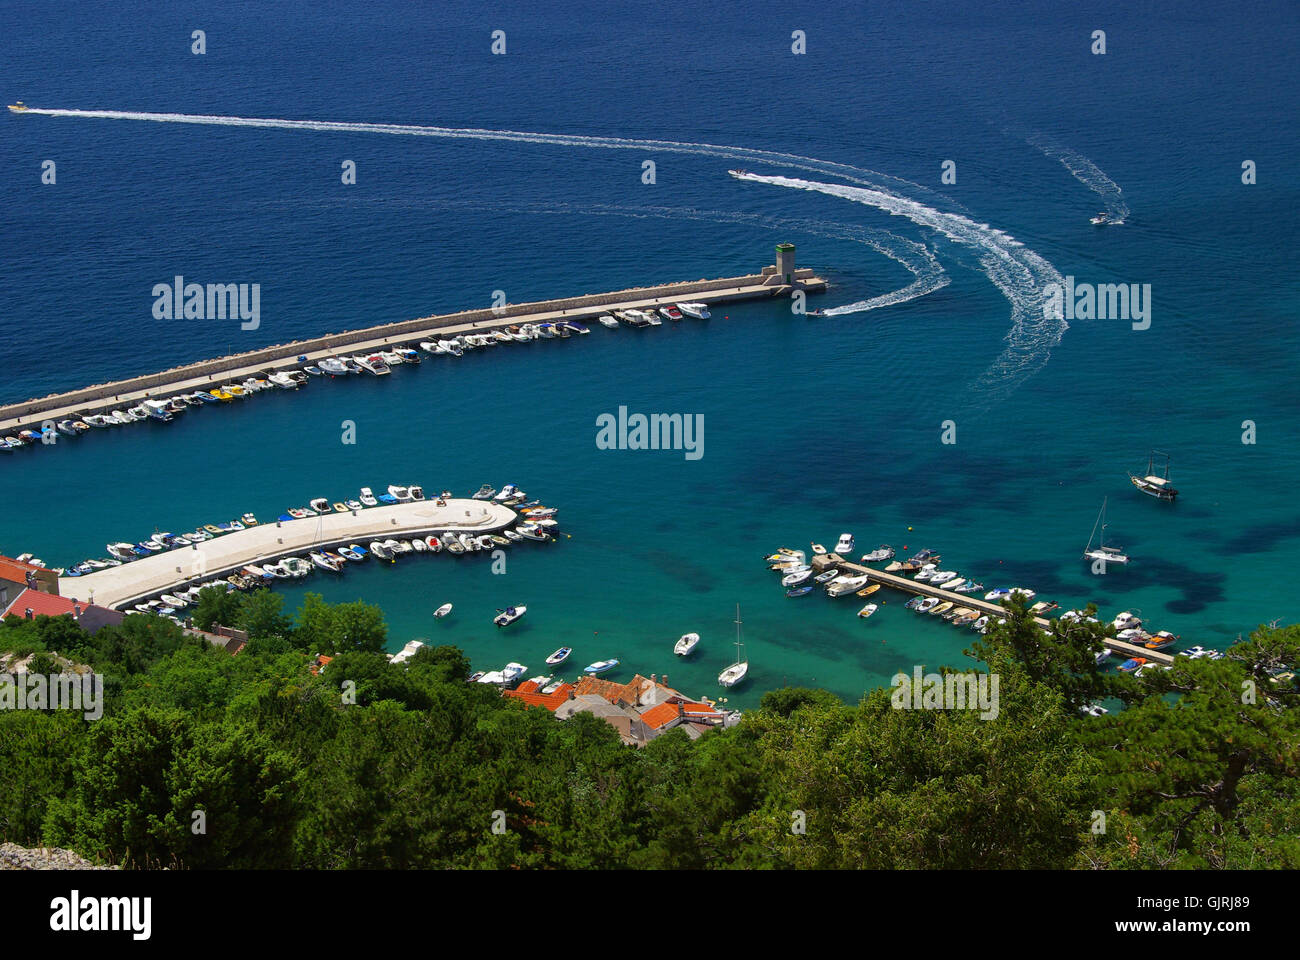 baska 11 - Stock Image